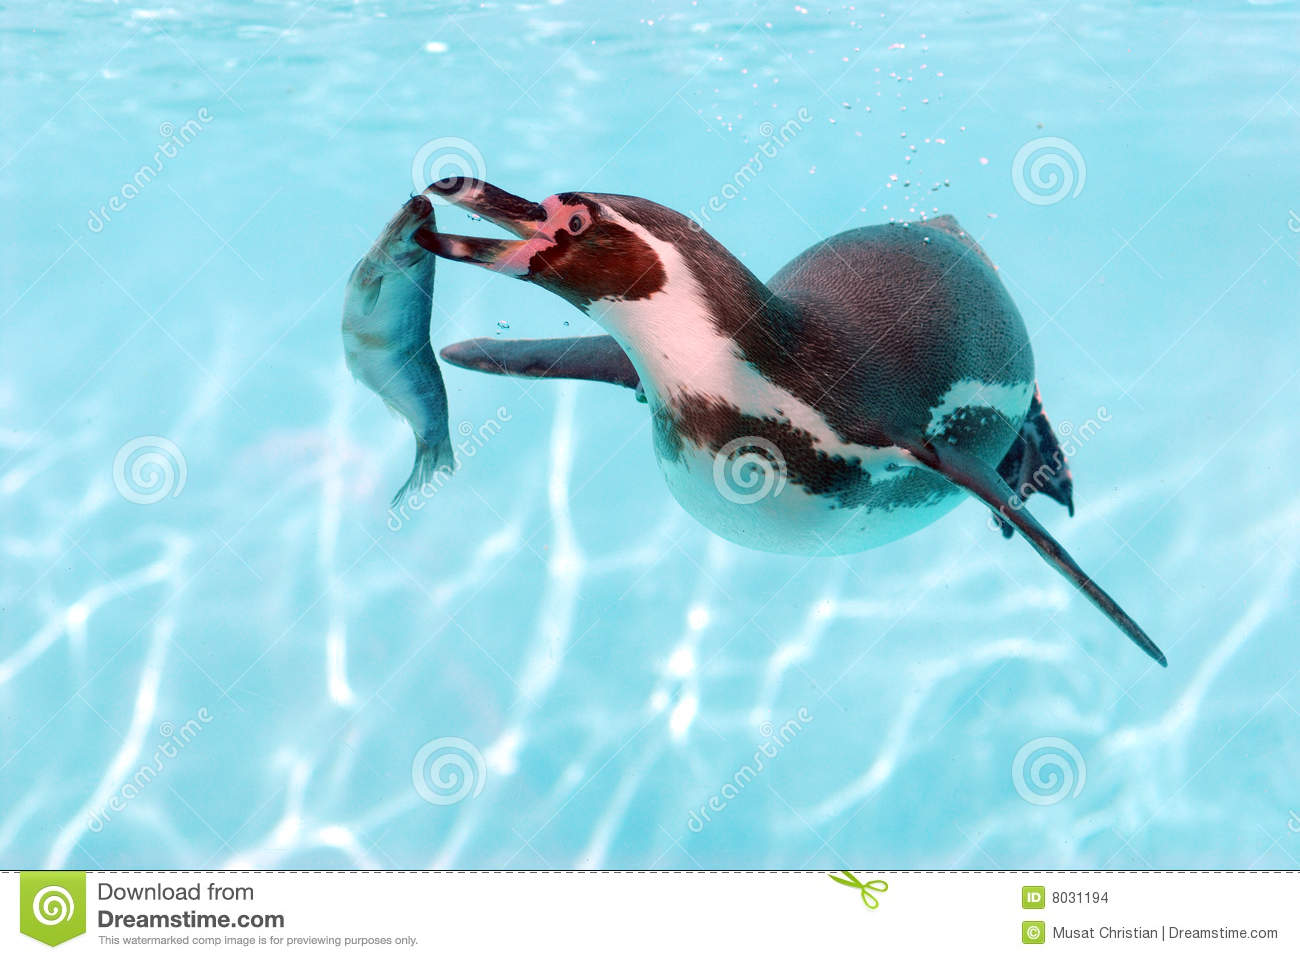 Penguin Eating Fish Stock Photos, Images, & Pictures - 45 Images